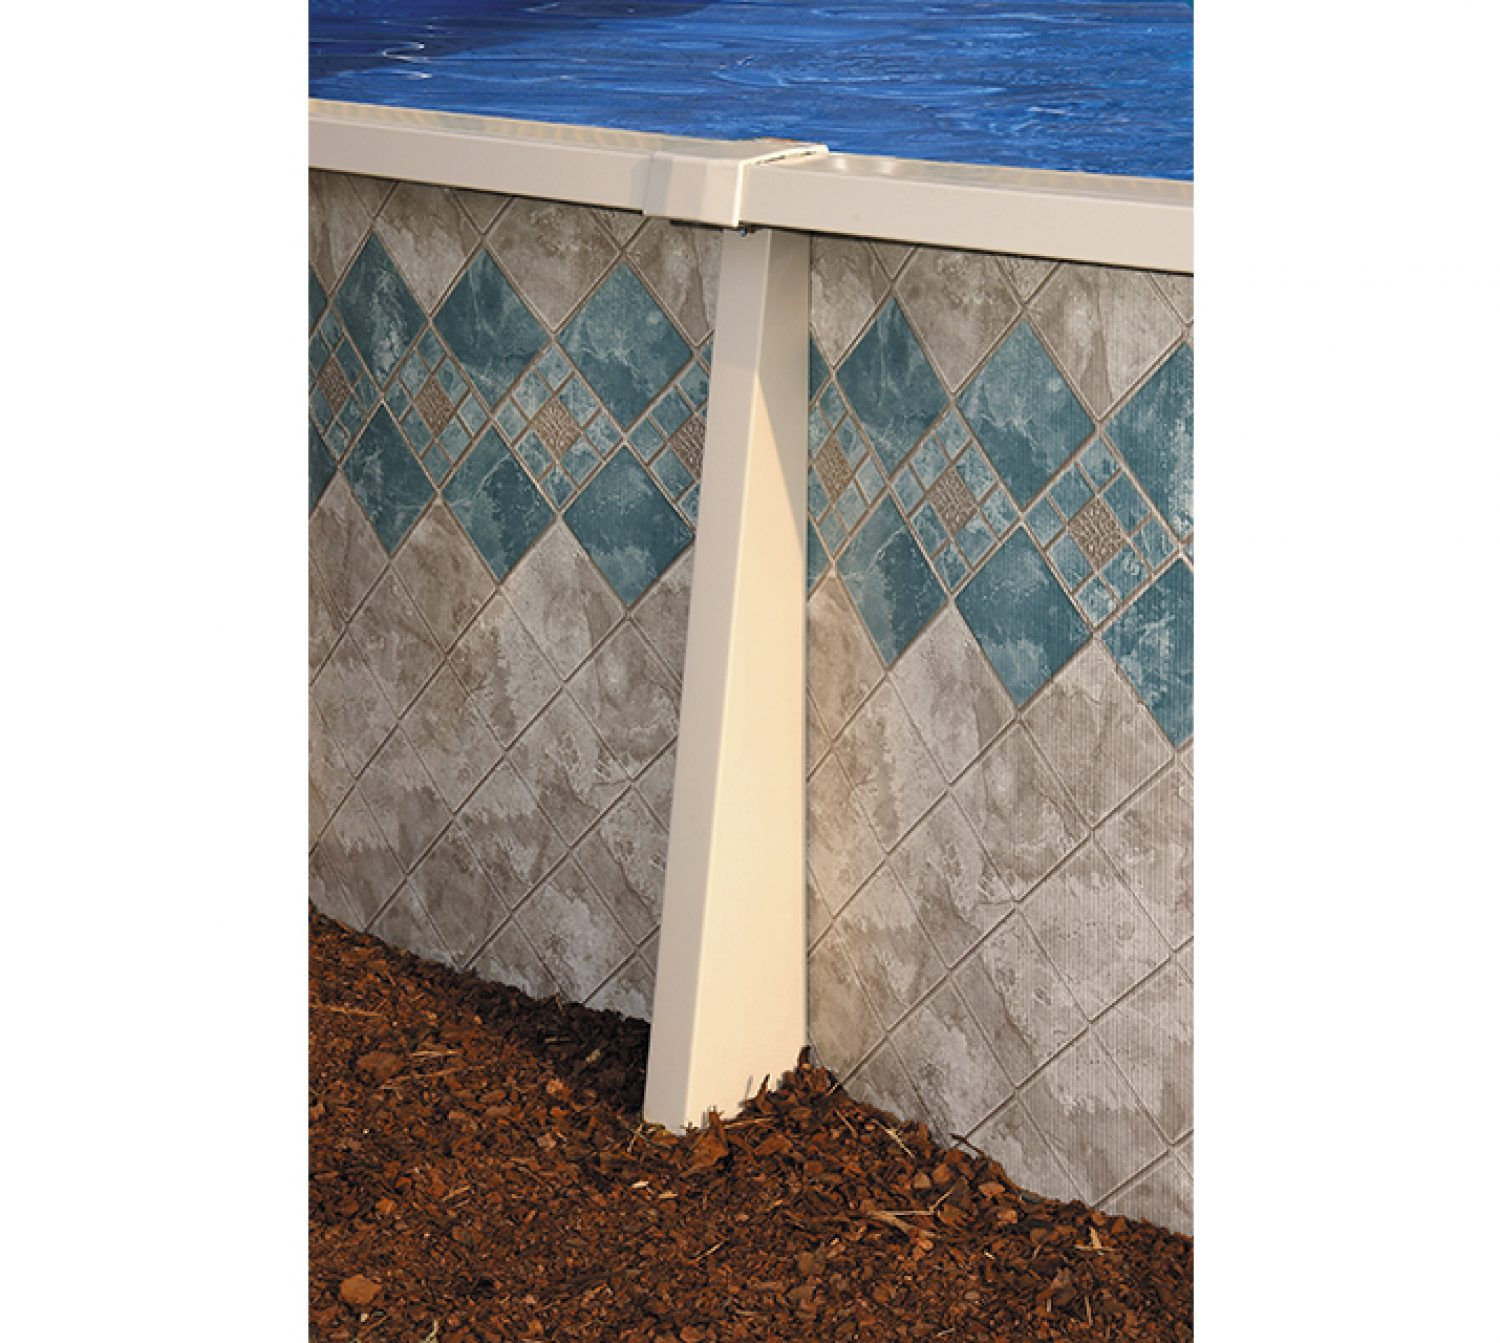 This Is A Photo Of The Side Of An Above Ground Swimming Pool.